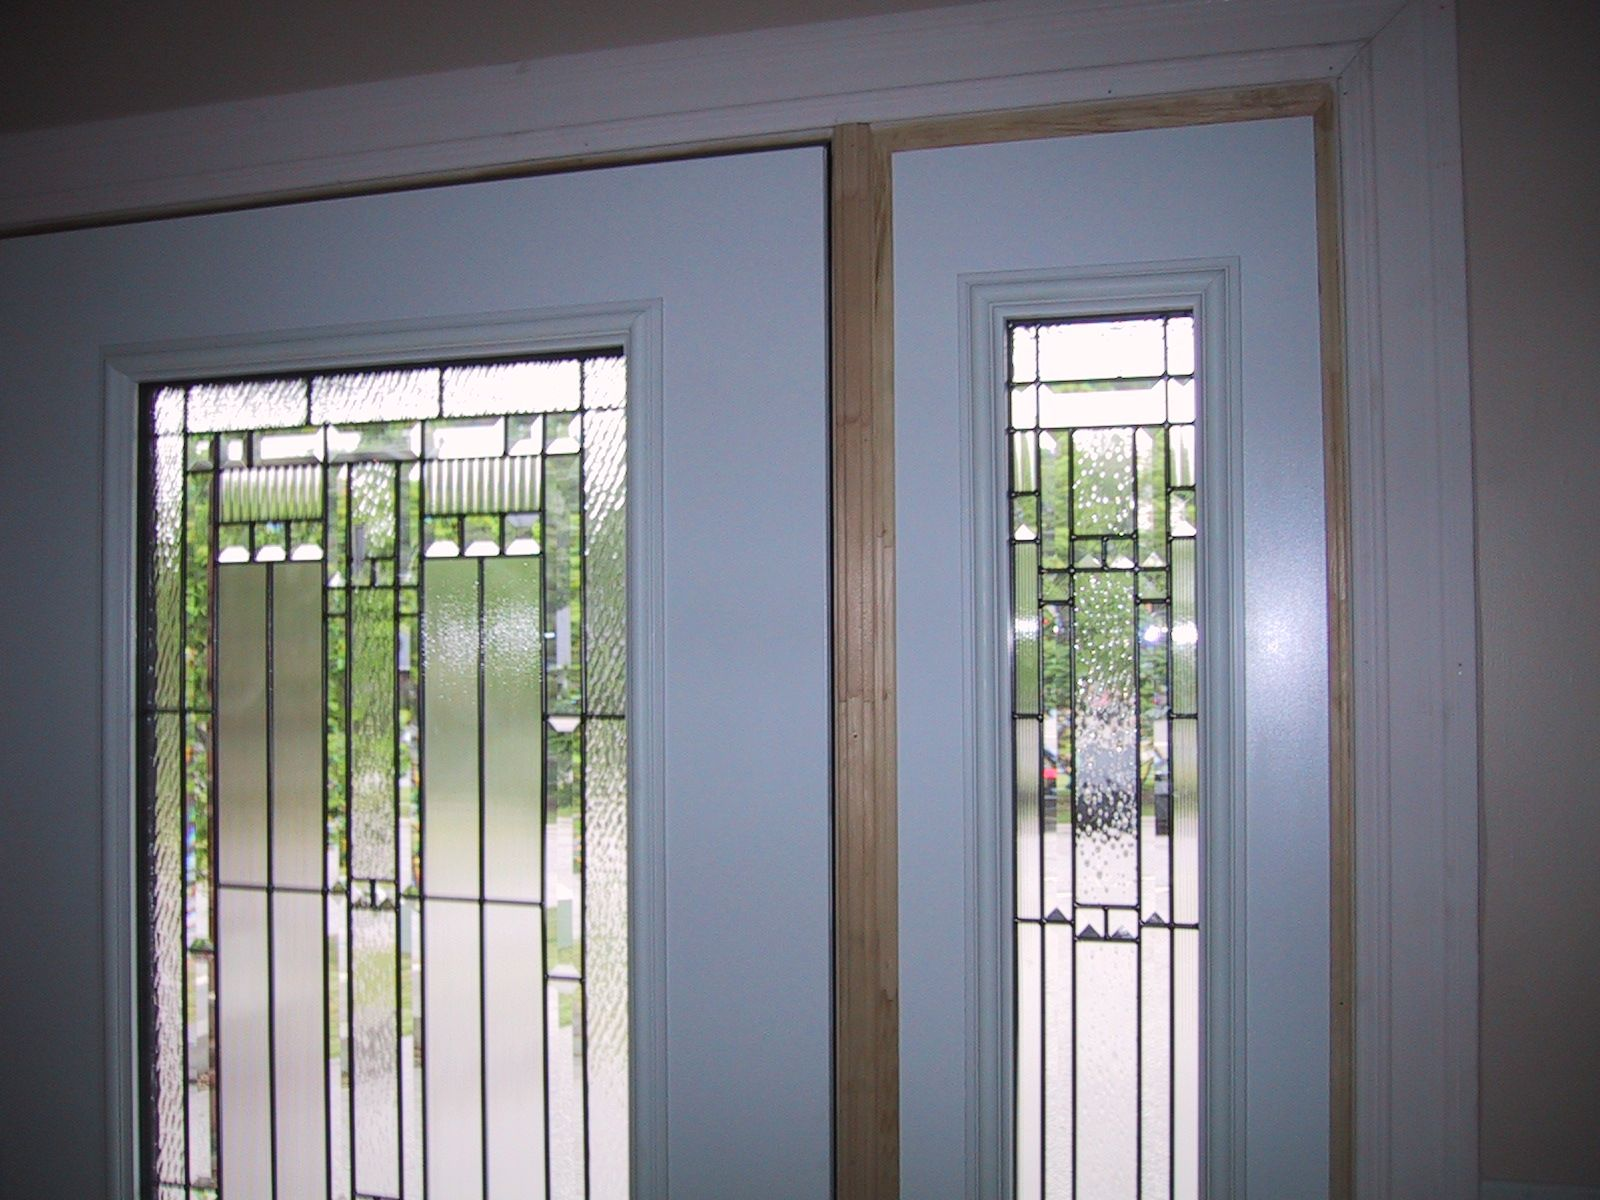 Exterior Door Glass Inserts | the glass inserts where you cannot ...